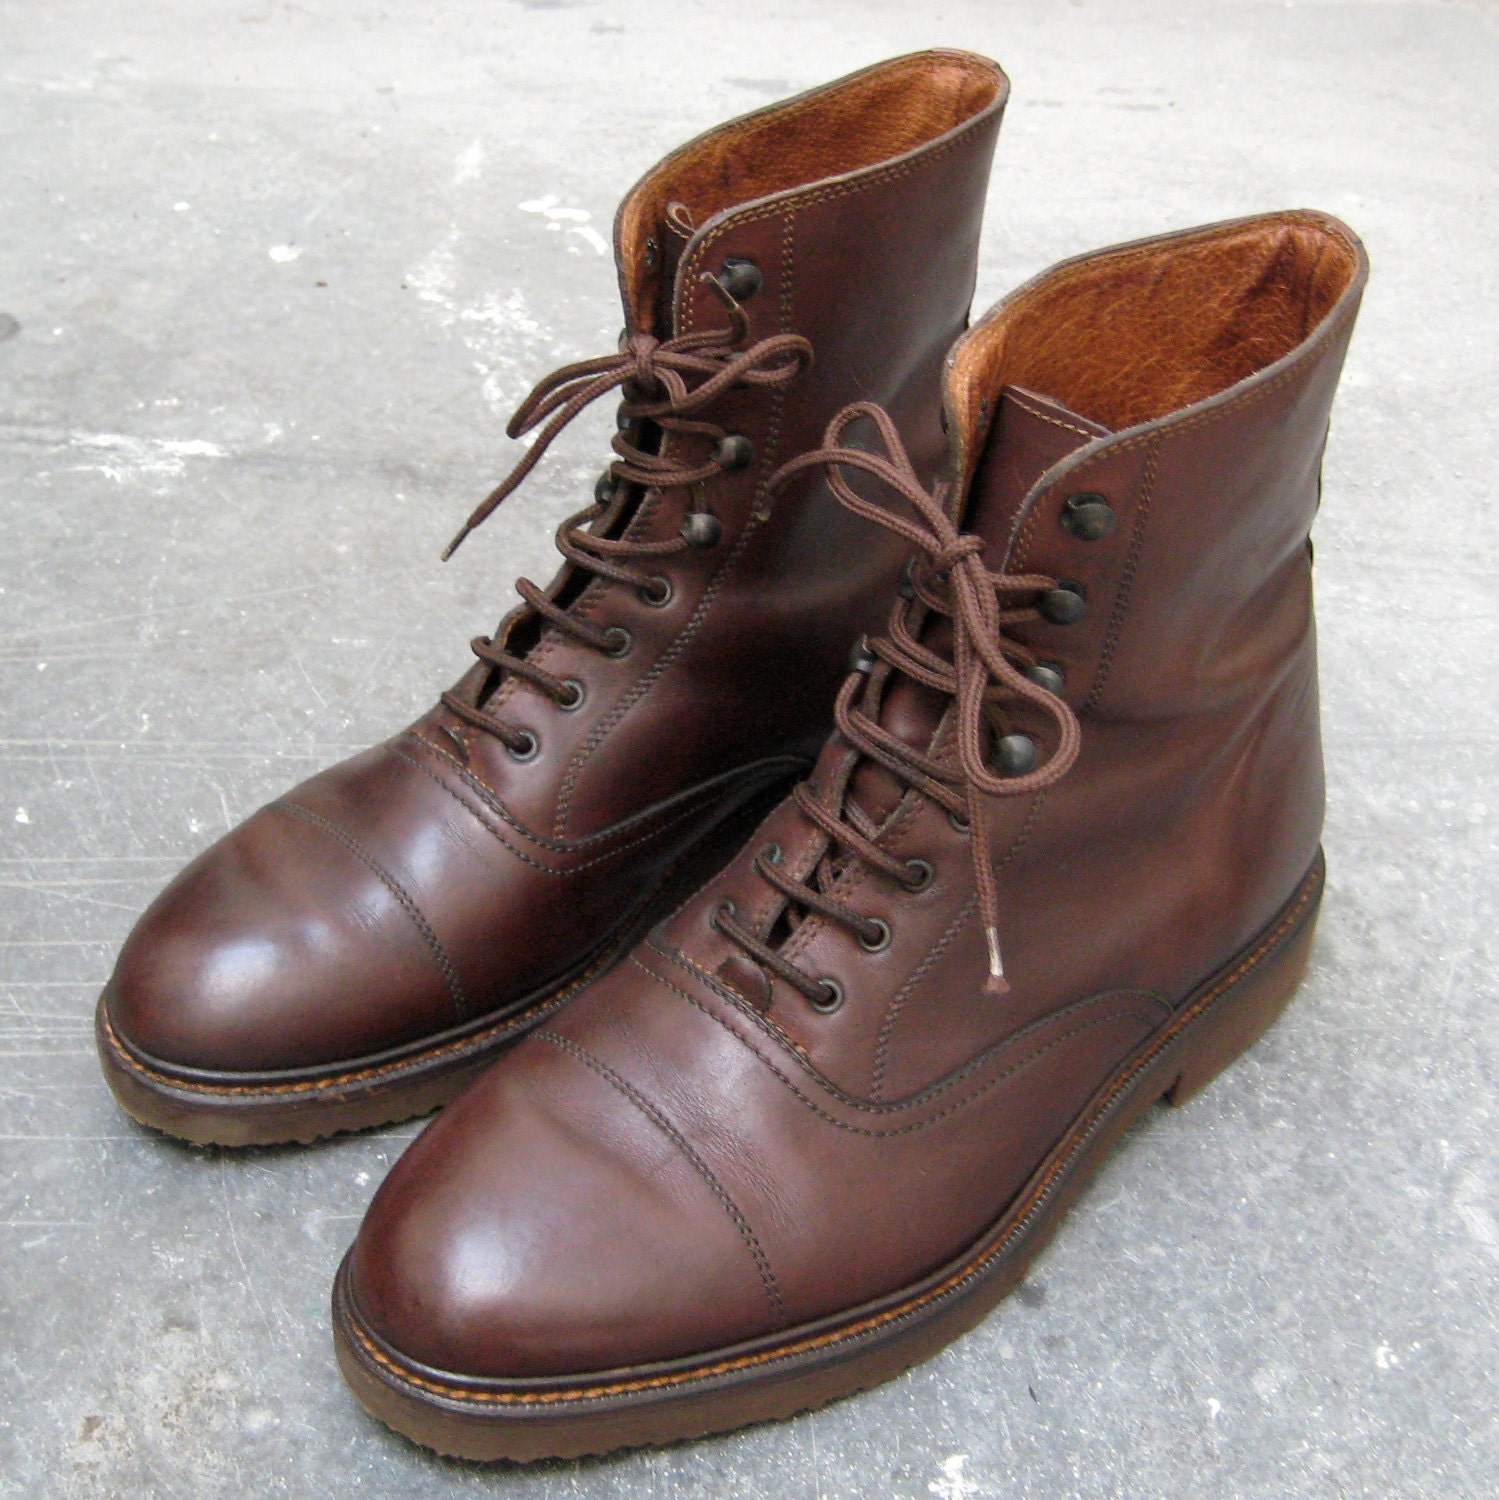 Vintage Italian Leather Brown Military Style Boots